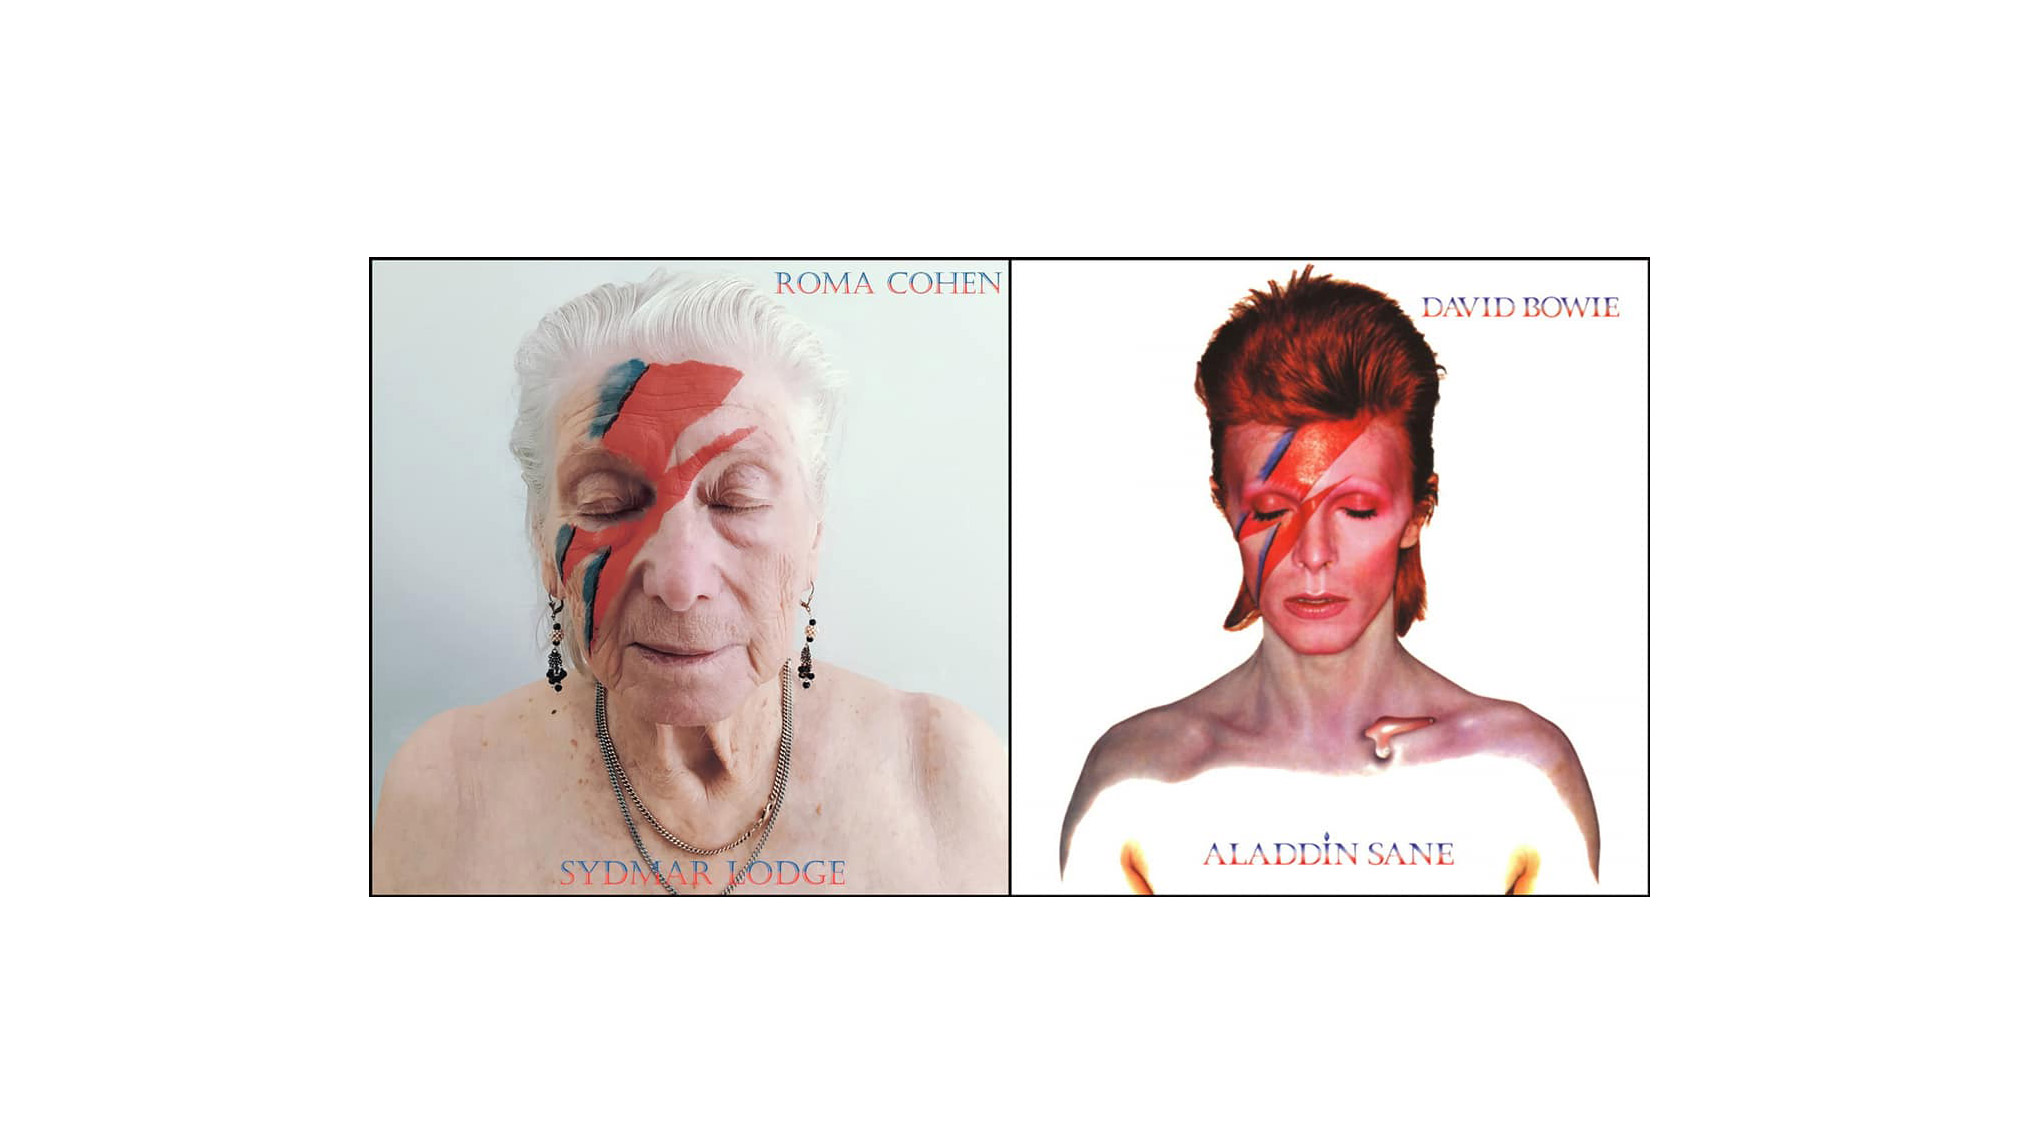 A nursing home in England recreates famous album covers using its residents as models